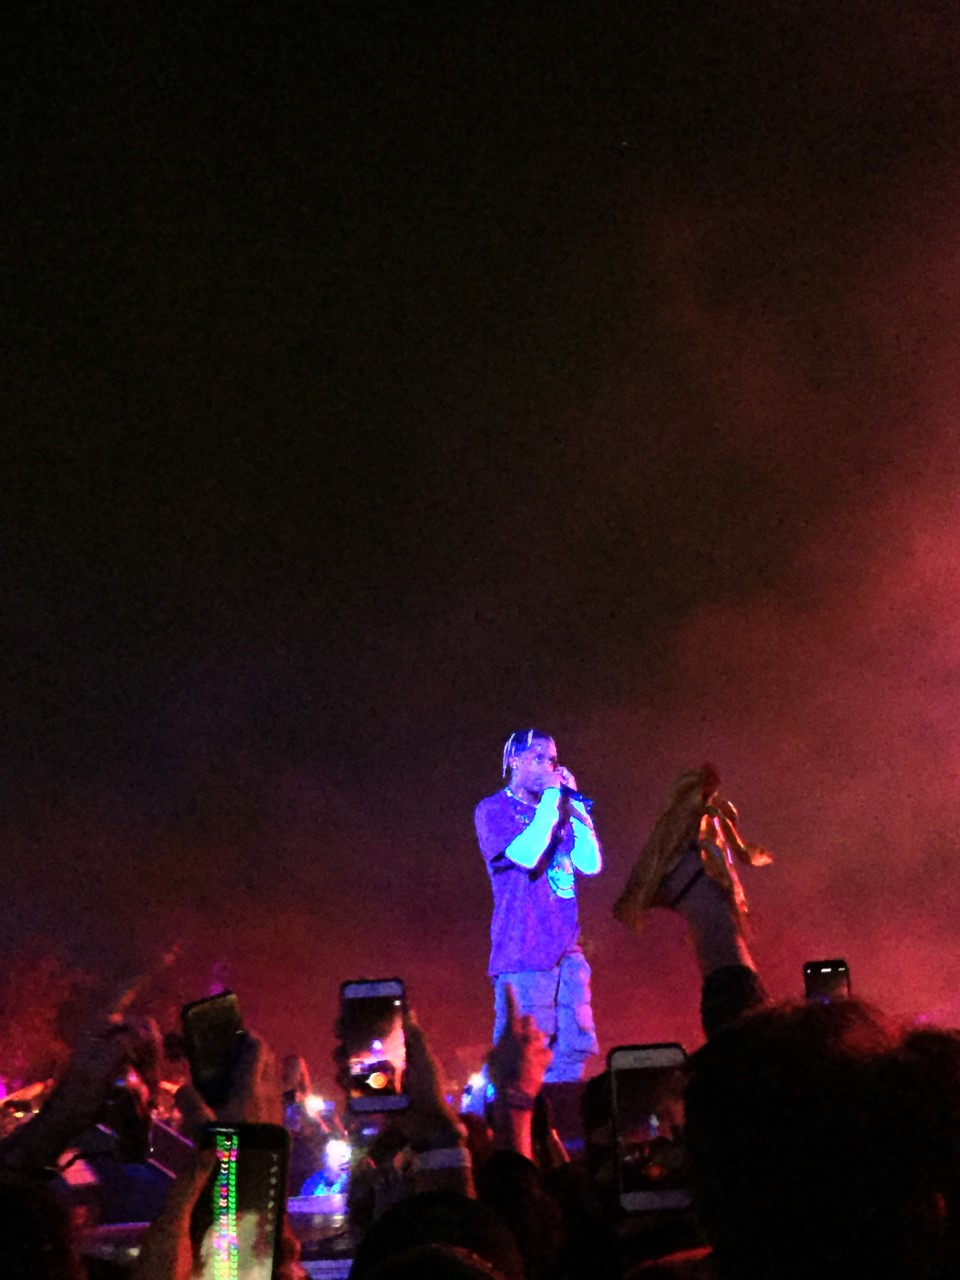 The picture features Travis Scott performing during his set.